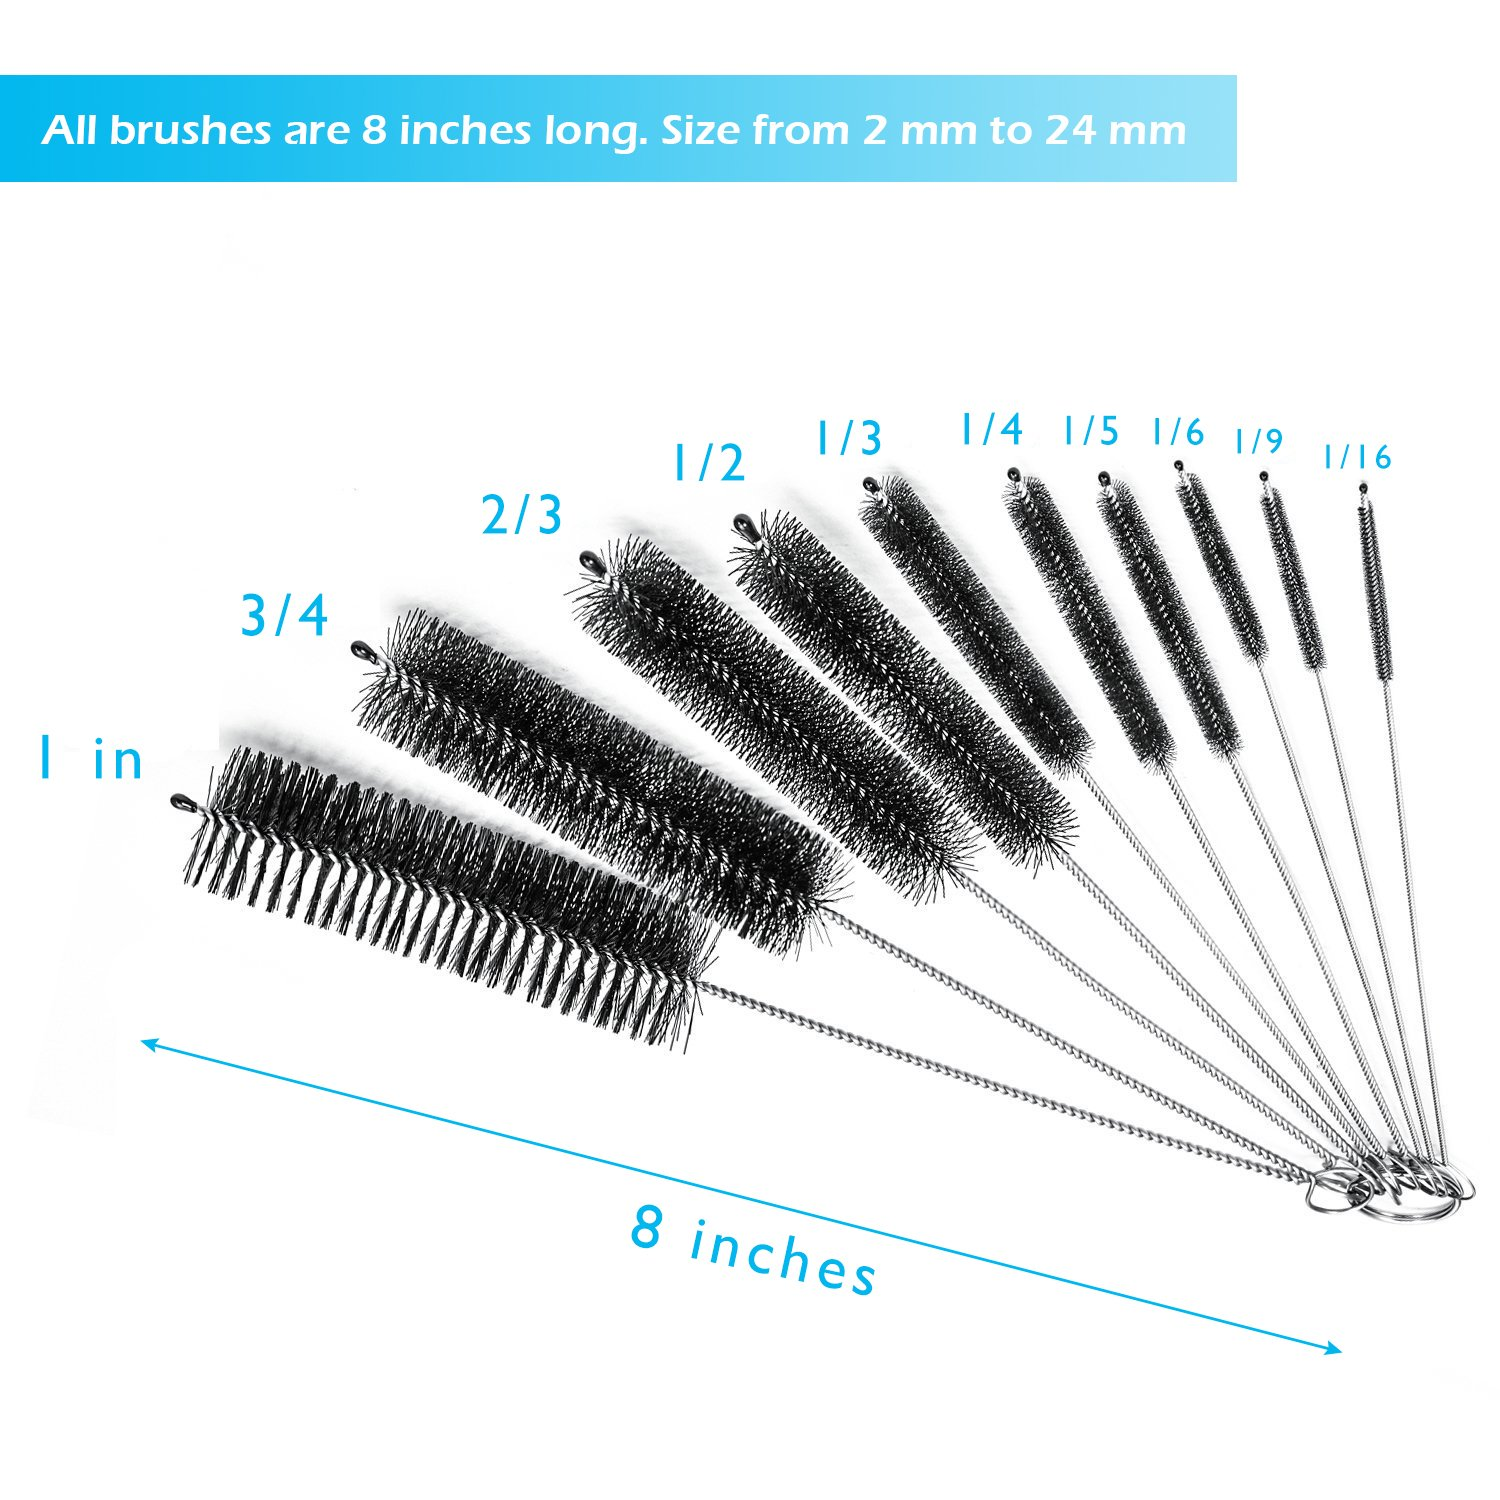 Etc 10 pieces Cleaning Brush Drinking Straws Glasses Keyboards Jewelry Cleaning Versatek Tube Brush 8 Inch Nylon Brushes Set with Protective Cap for Tube